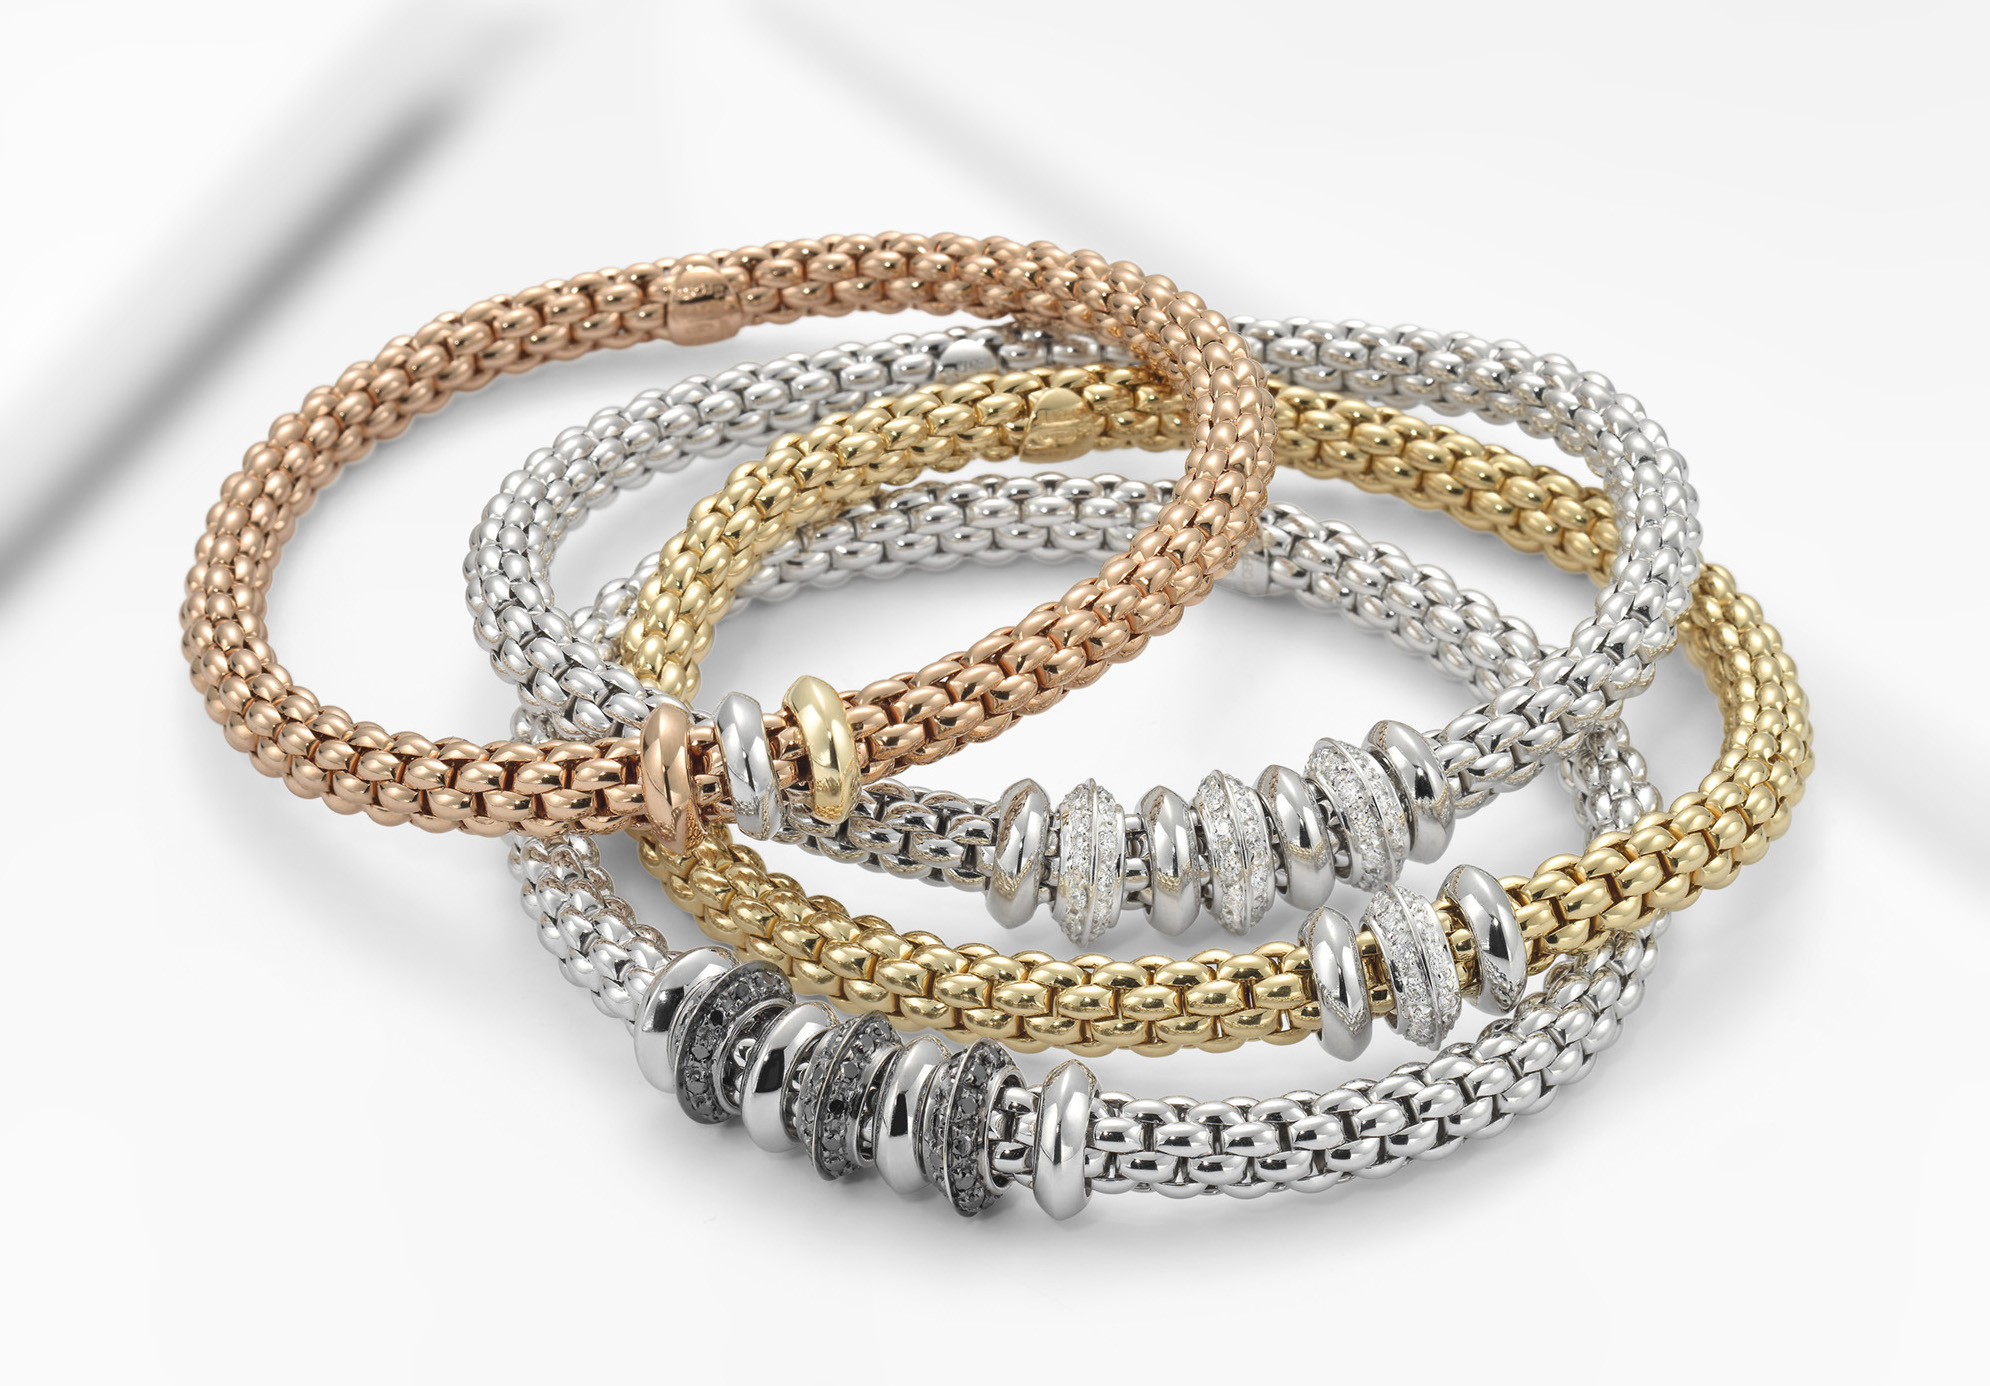 Fope Solo collection Flex'it bracelets with diamonds | JCK On Your Market